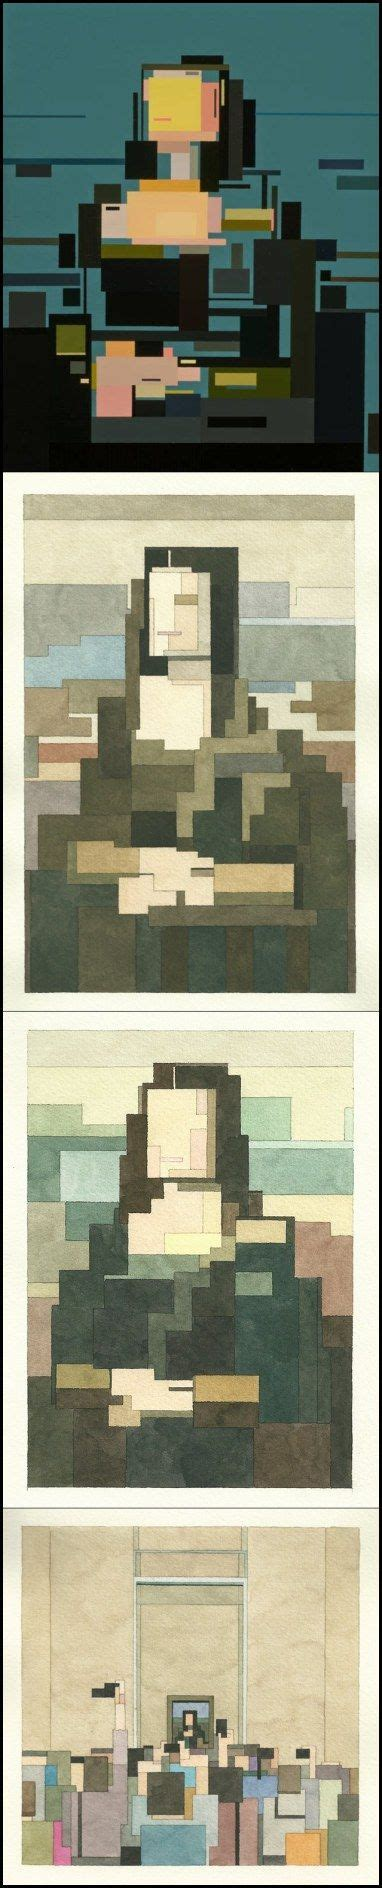 Best Images About Deconstructing Mona Lisa On Pinterest Lego Warhol And Pop Art